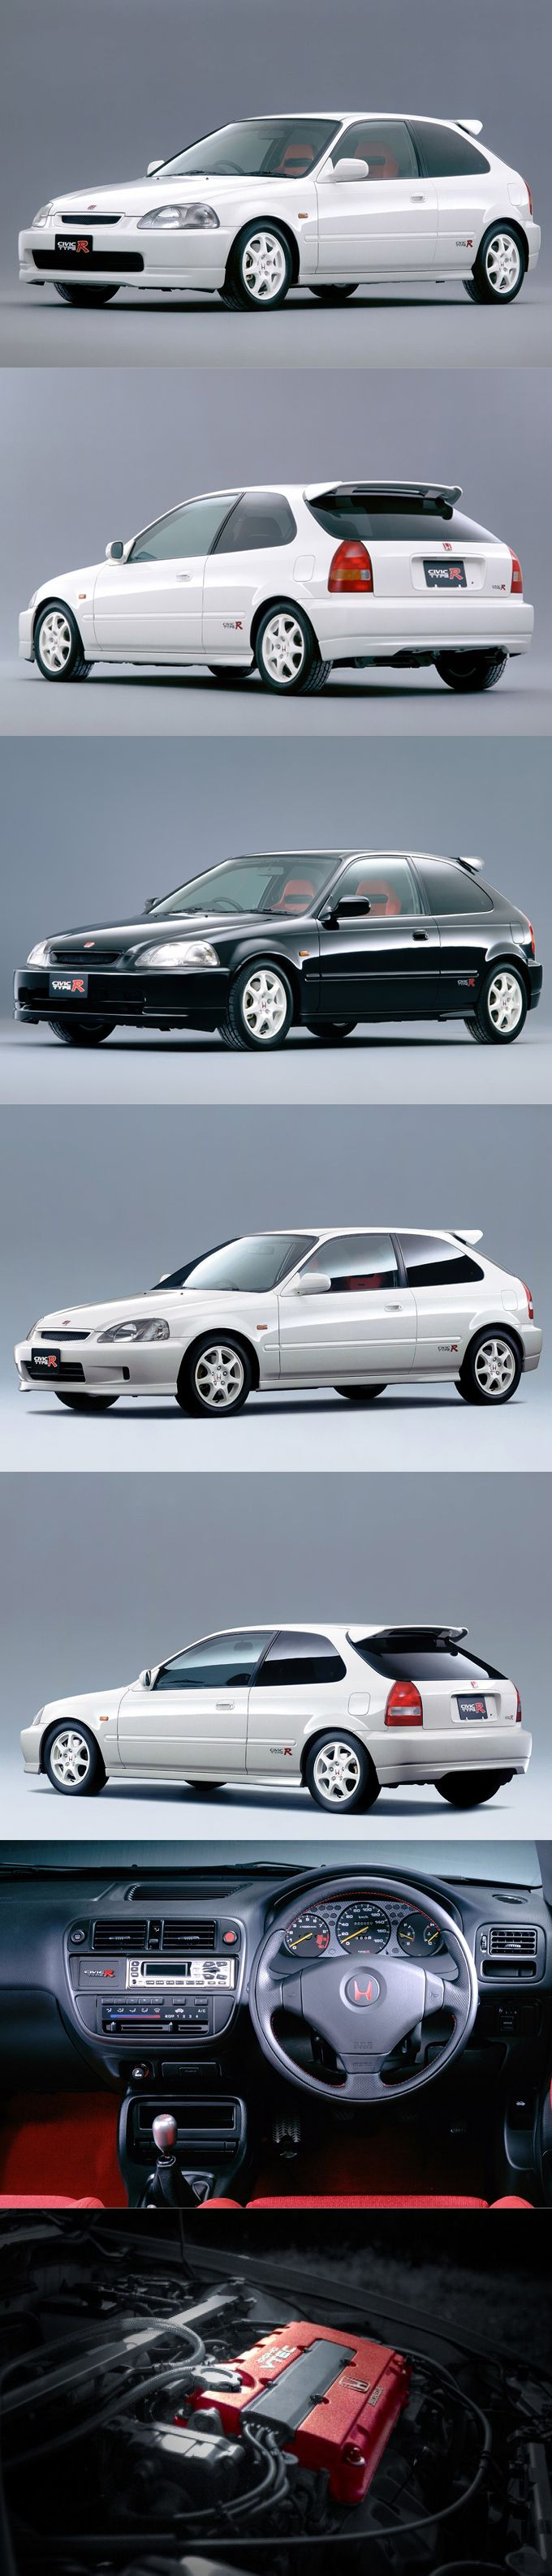 1997 Honda Civic Type R / EK9 / Japan / white black red